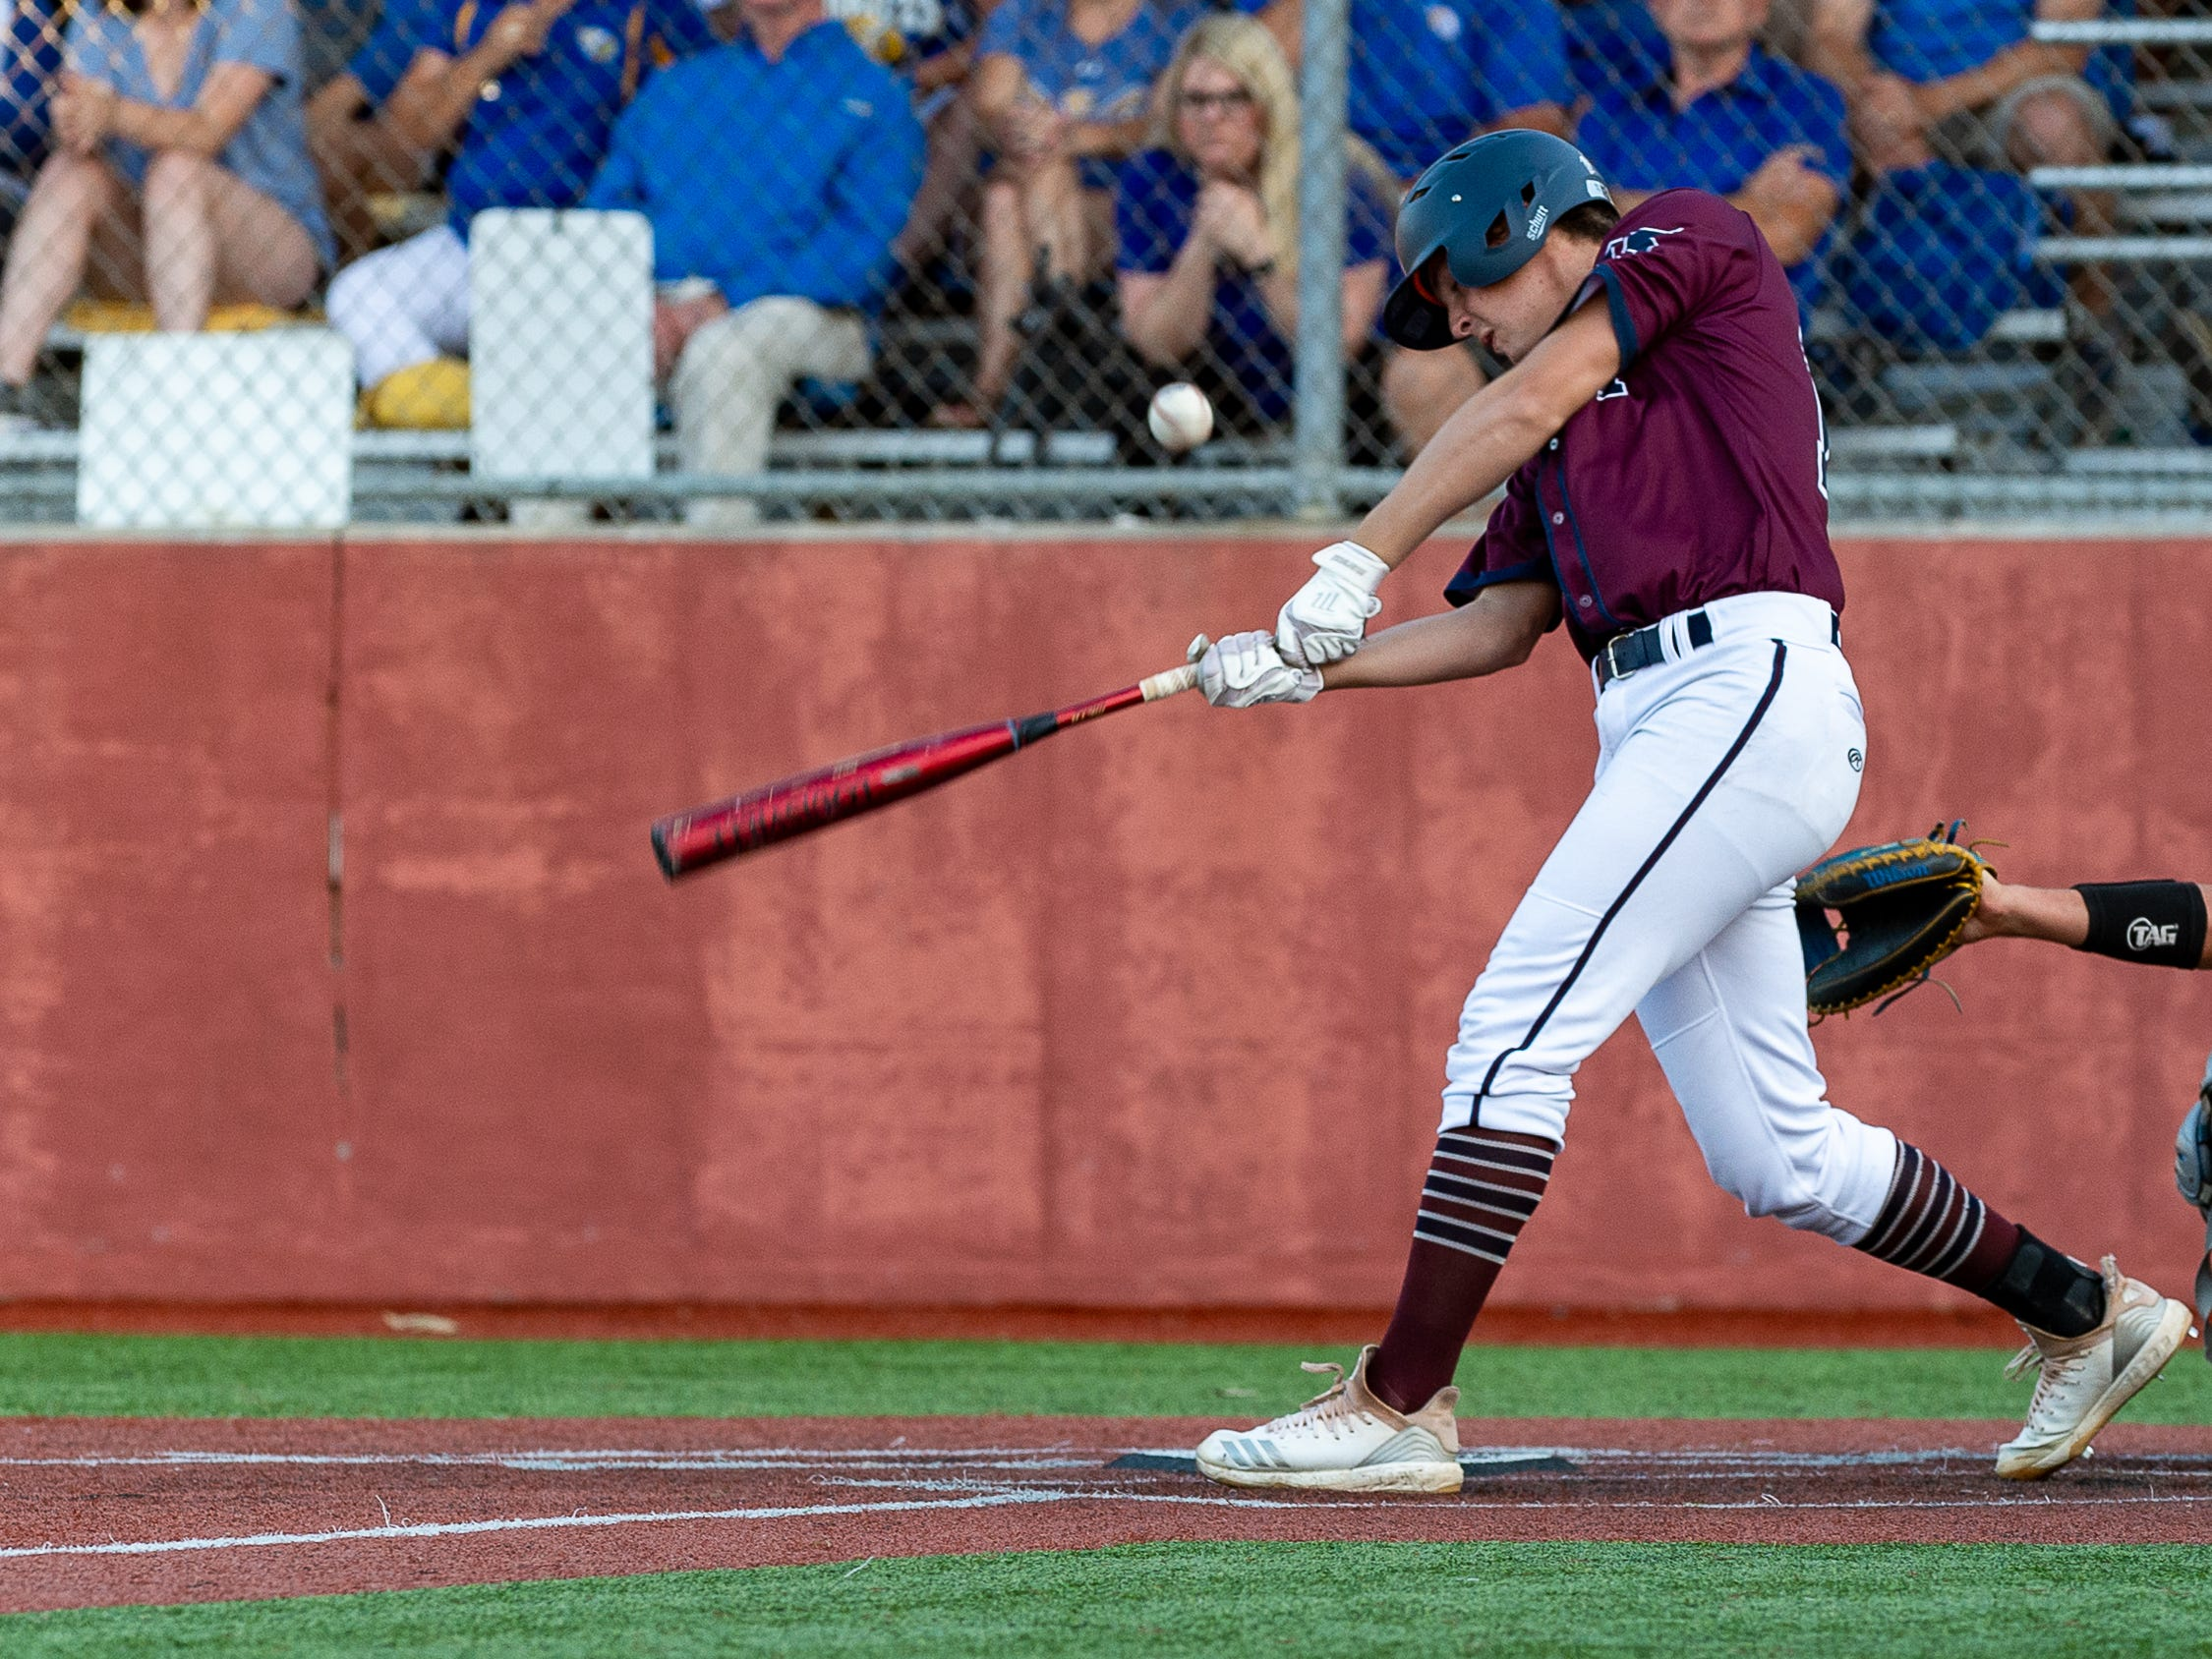 Connor Duffy at the plate as St Thomas More takes on St Charles  in the Div II semi final round at the LHSAA State Championship. . Sunday, May 12, 2019.